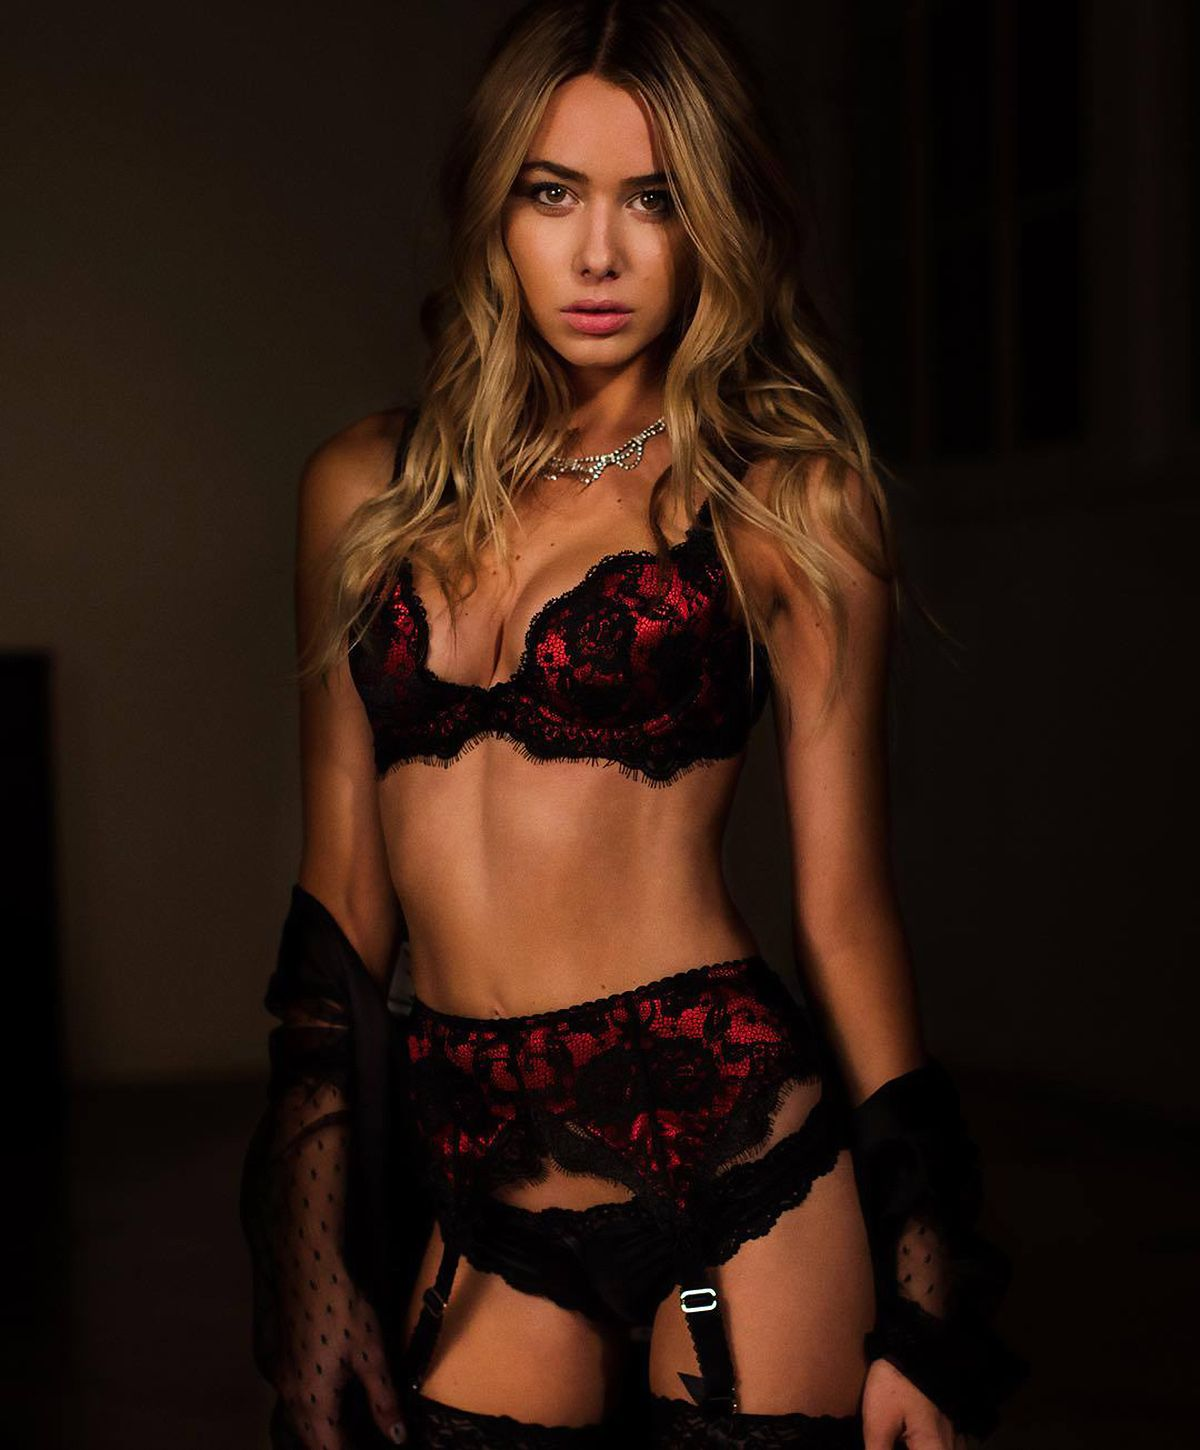 Celeste Bright - Ramon Bryce photoshoot - 2016